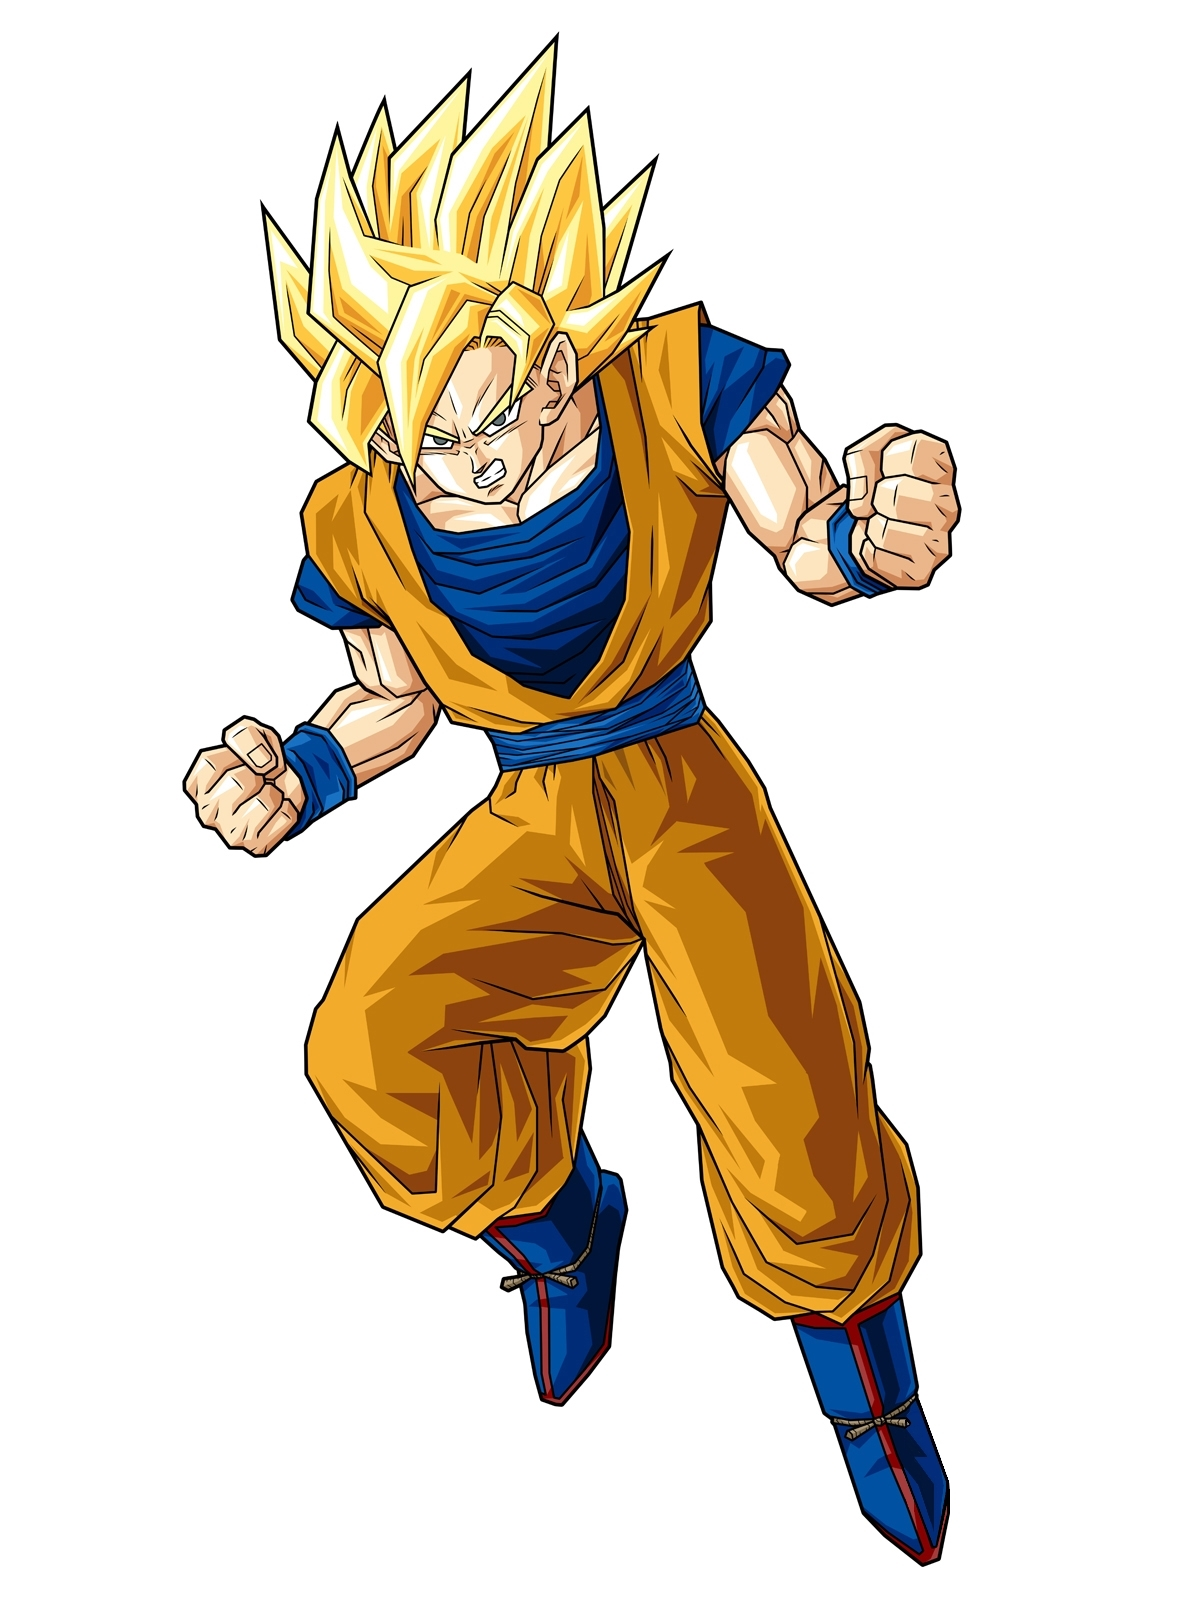 Son goku dragon ball image 50 - Dragon ball z goku son ...